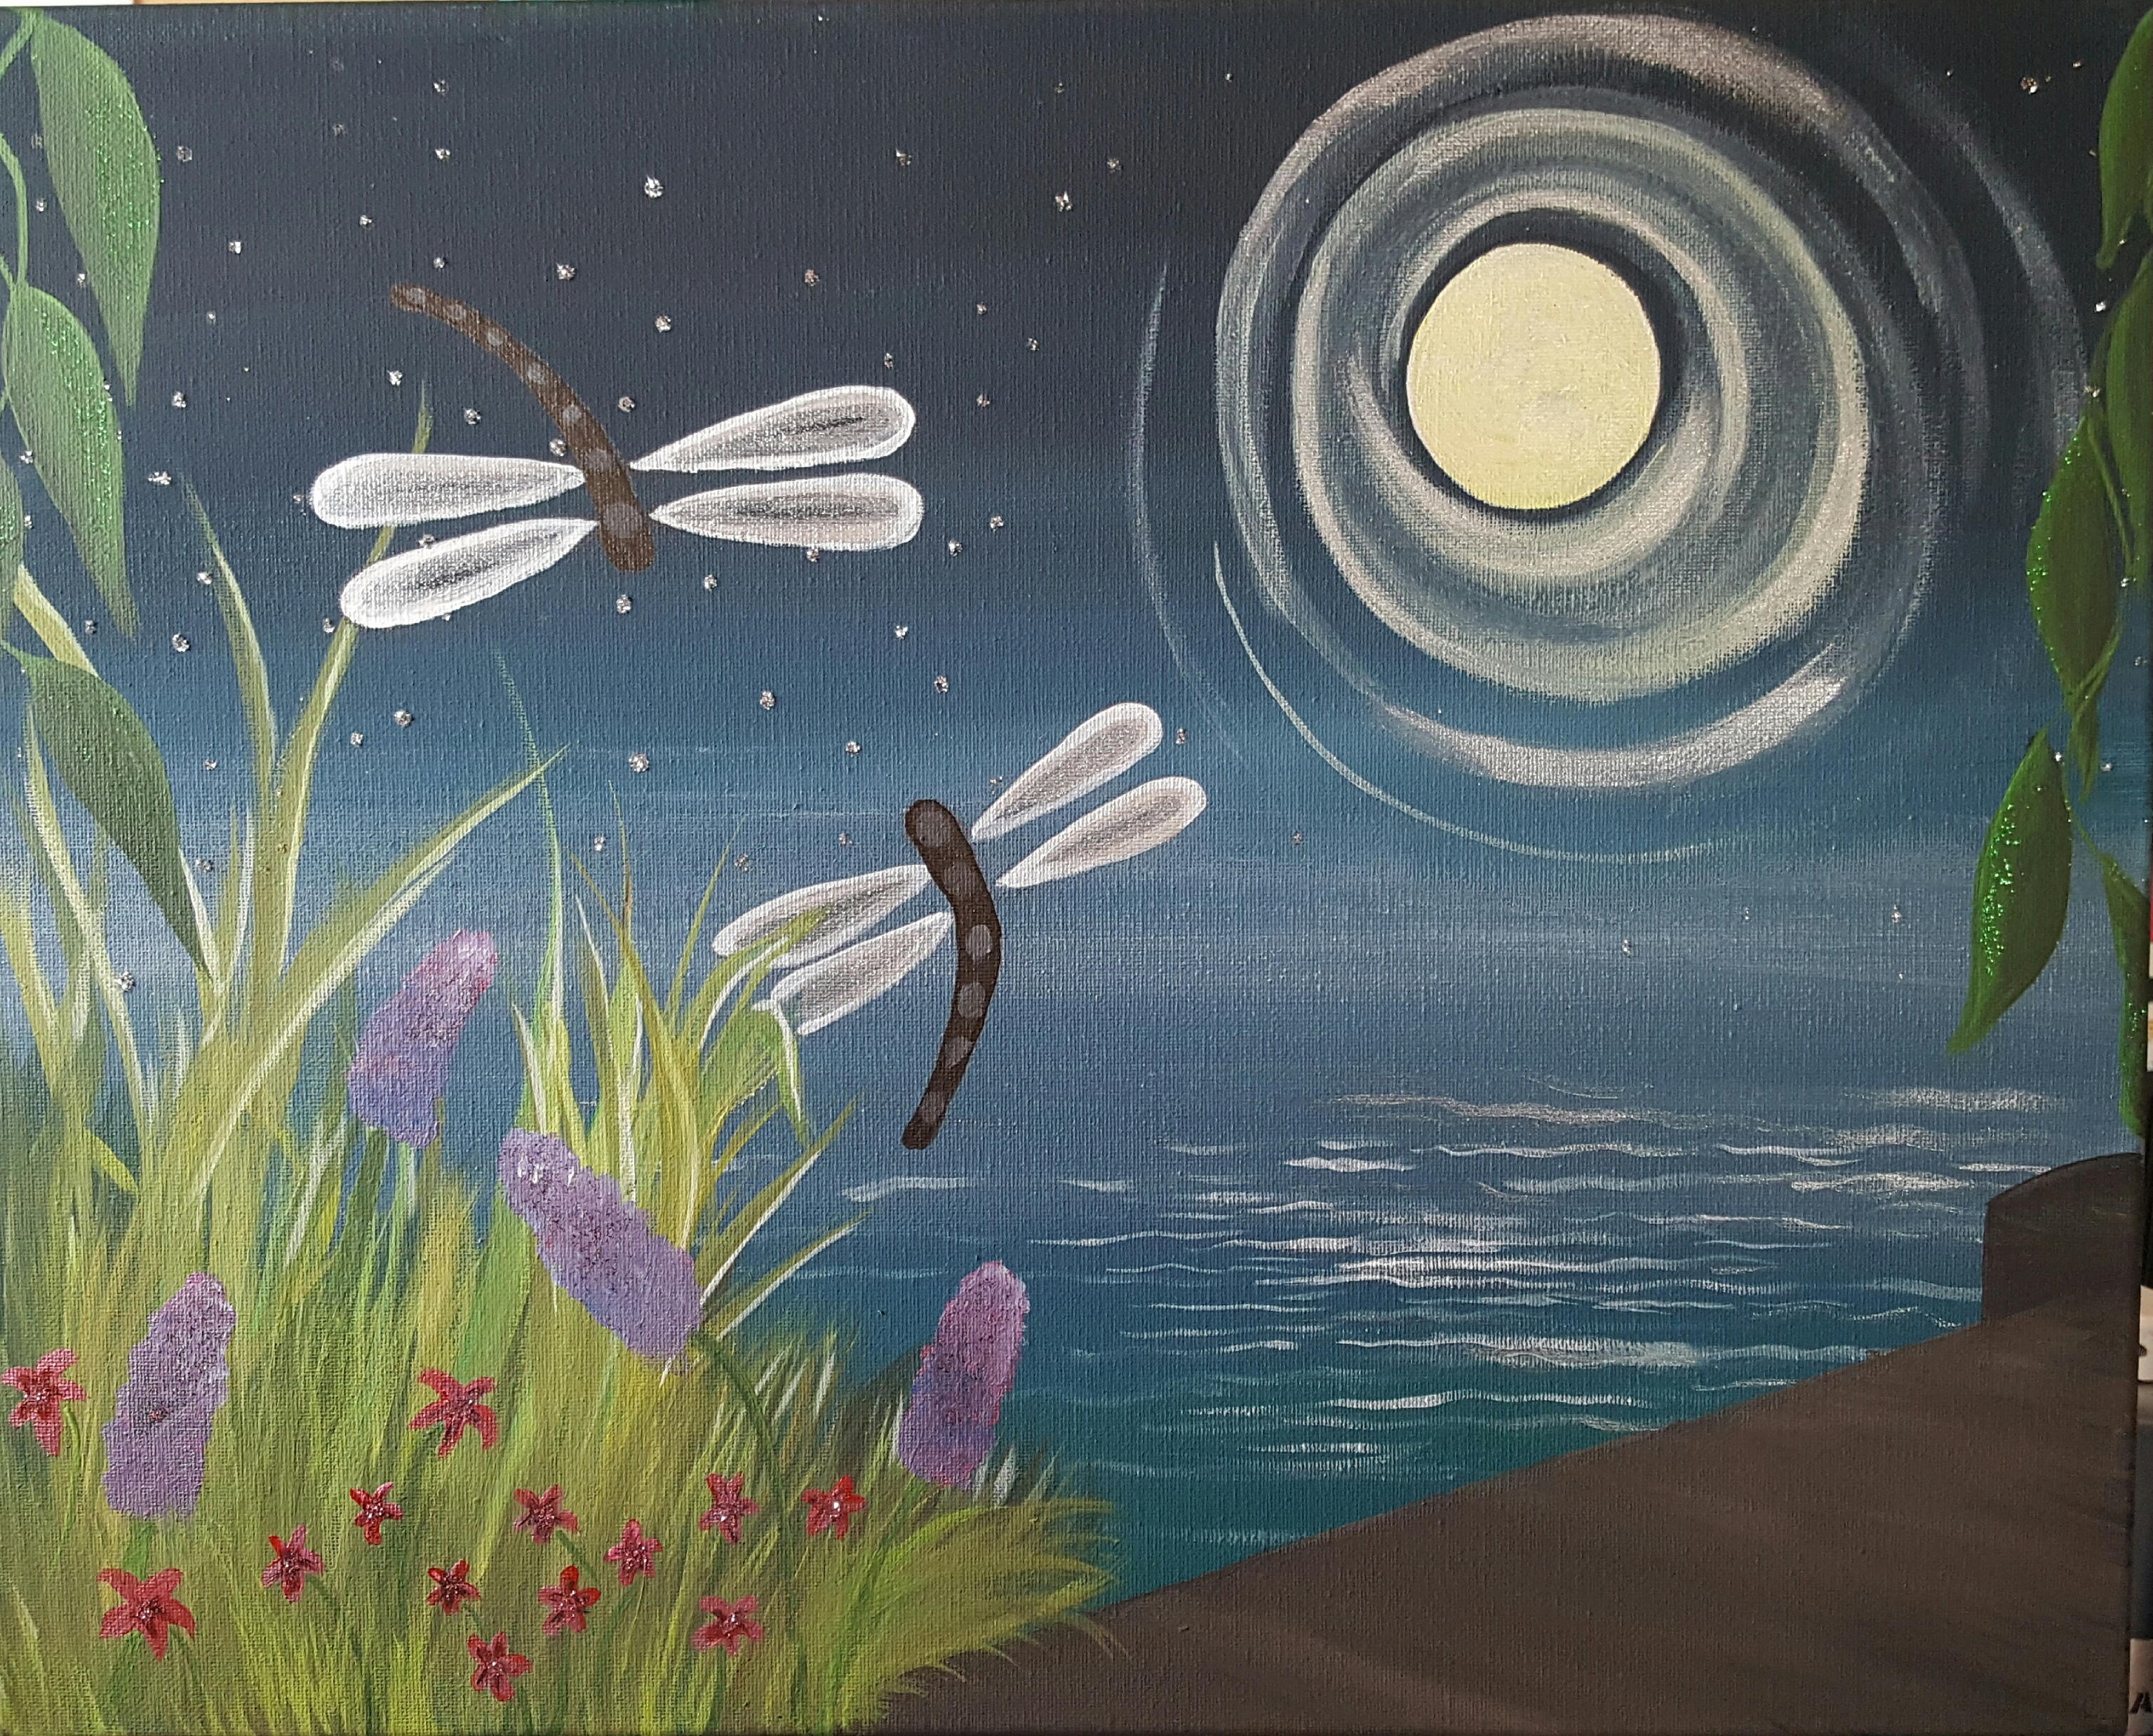 Dragonflies in moonlight